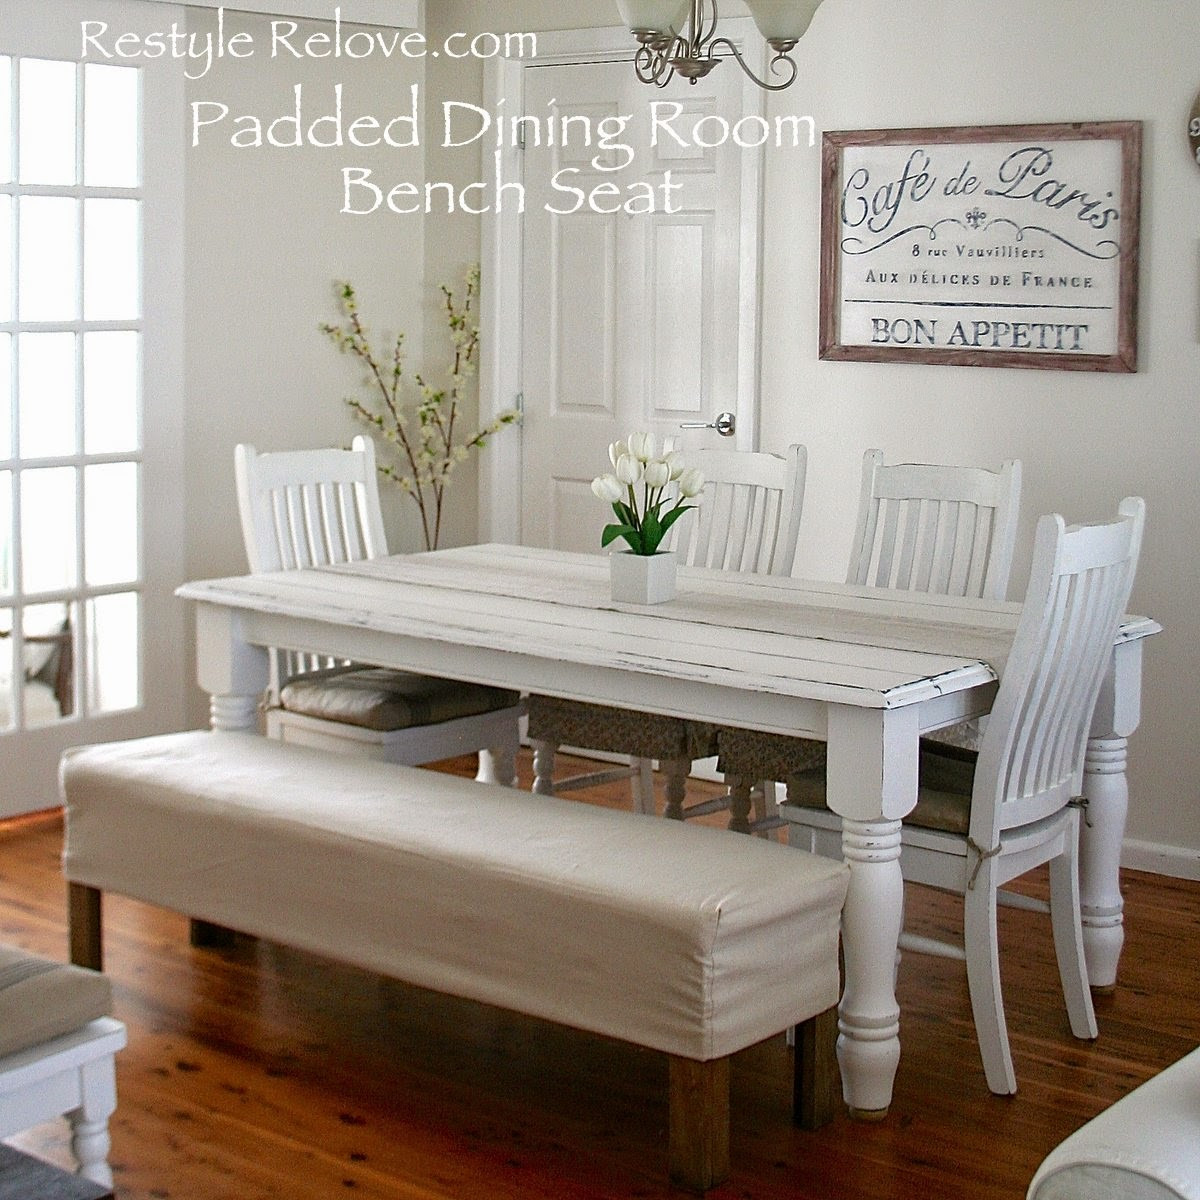 Best ideas about Dining Room Bench . Save or Pin Padded Dining Room Bench Seat with Removable Washable Drop Now.